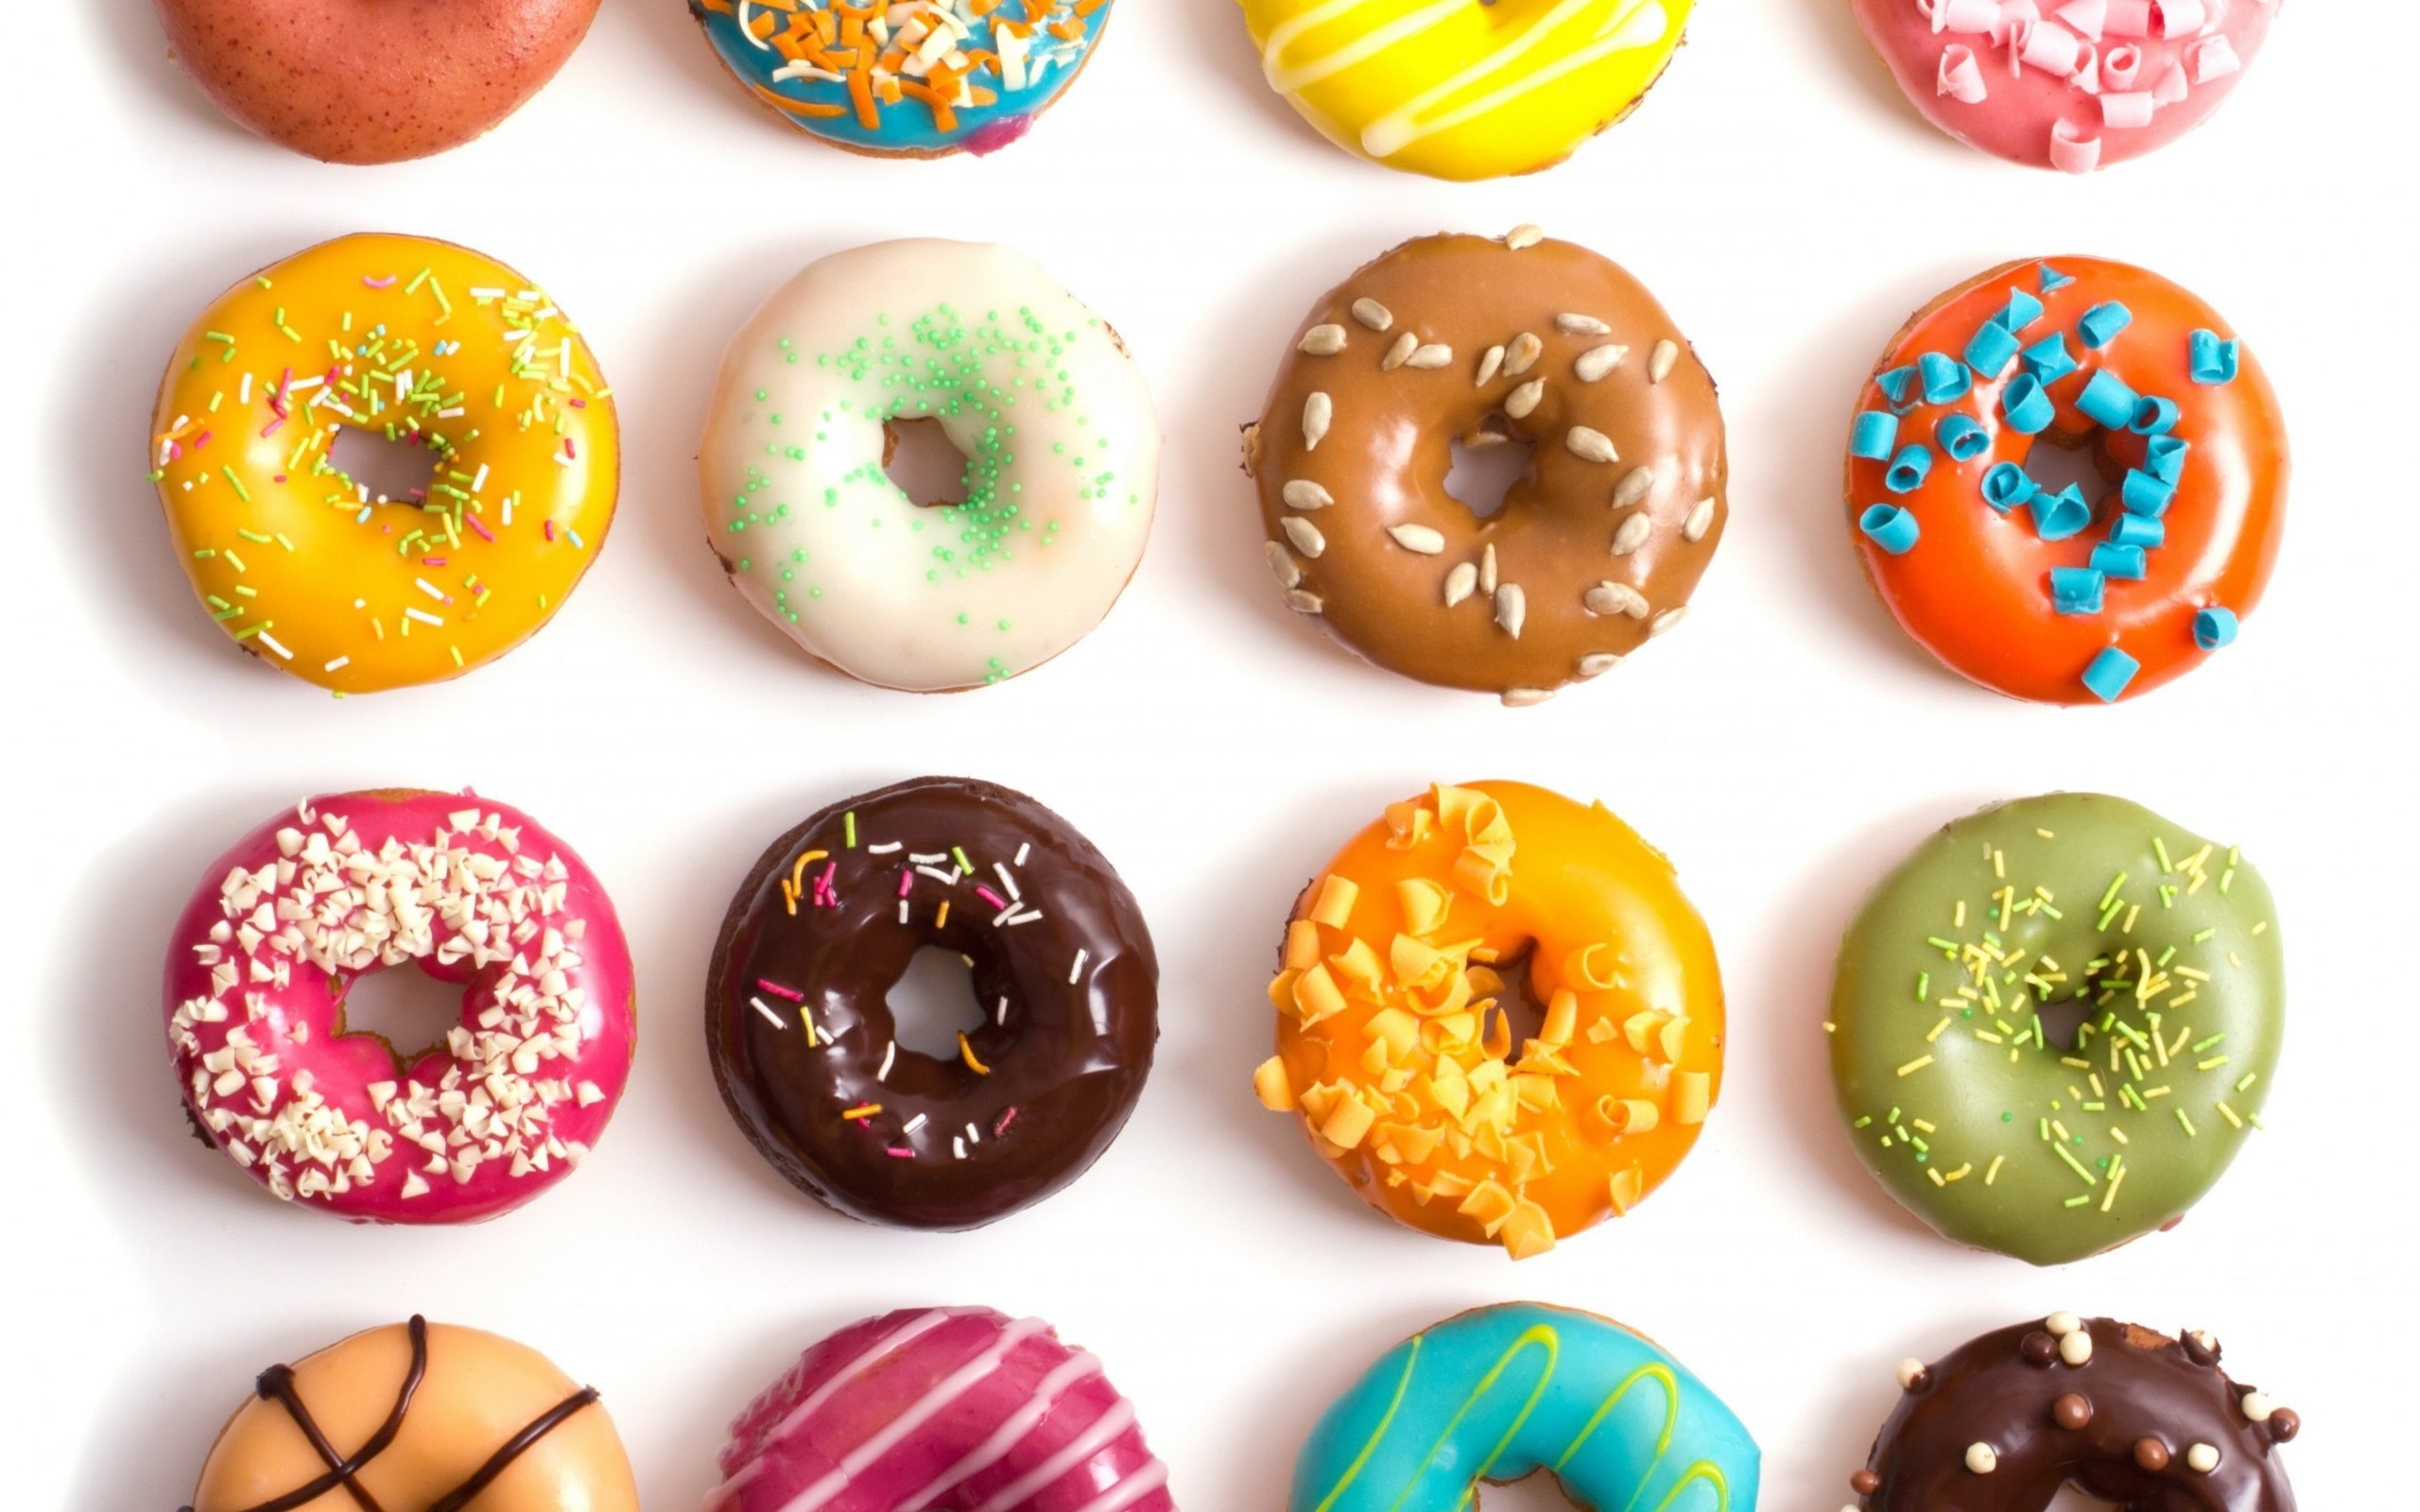 donut images